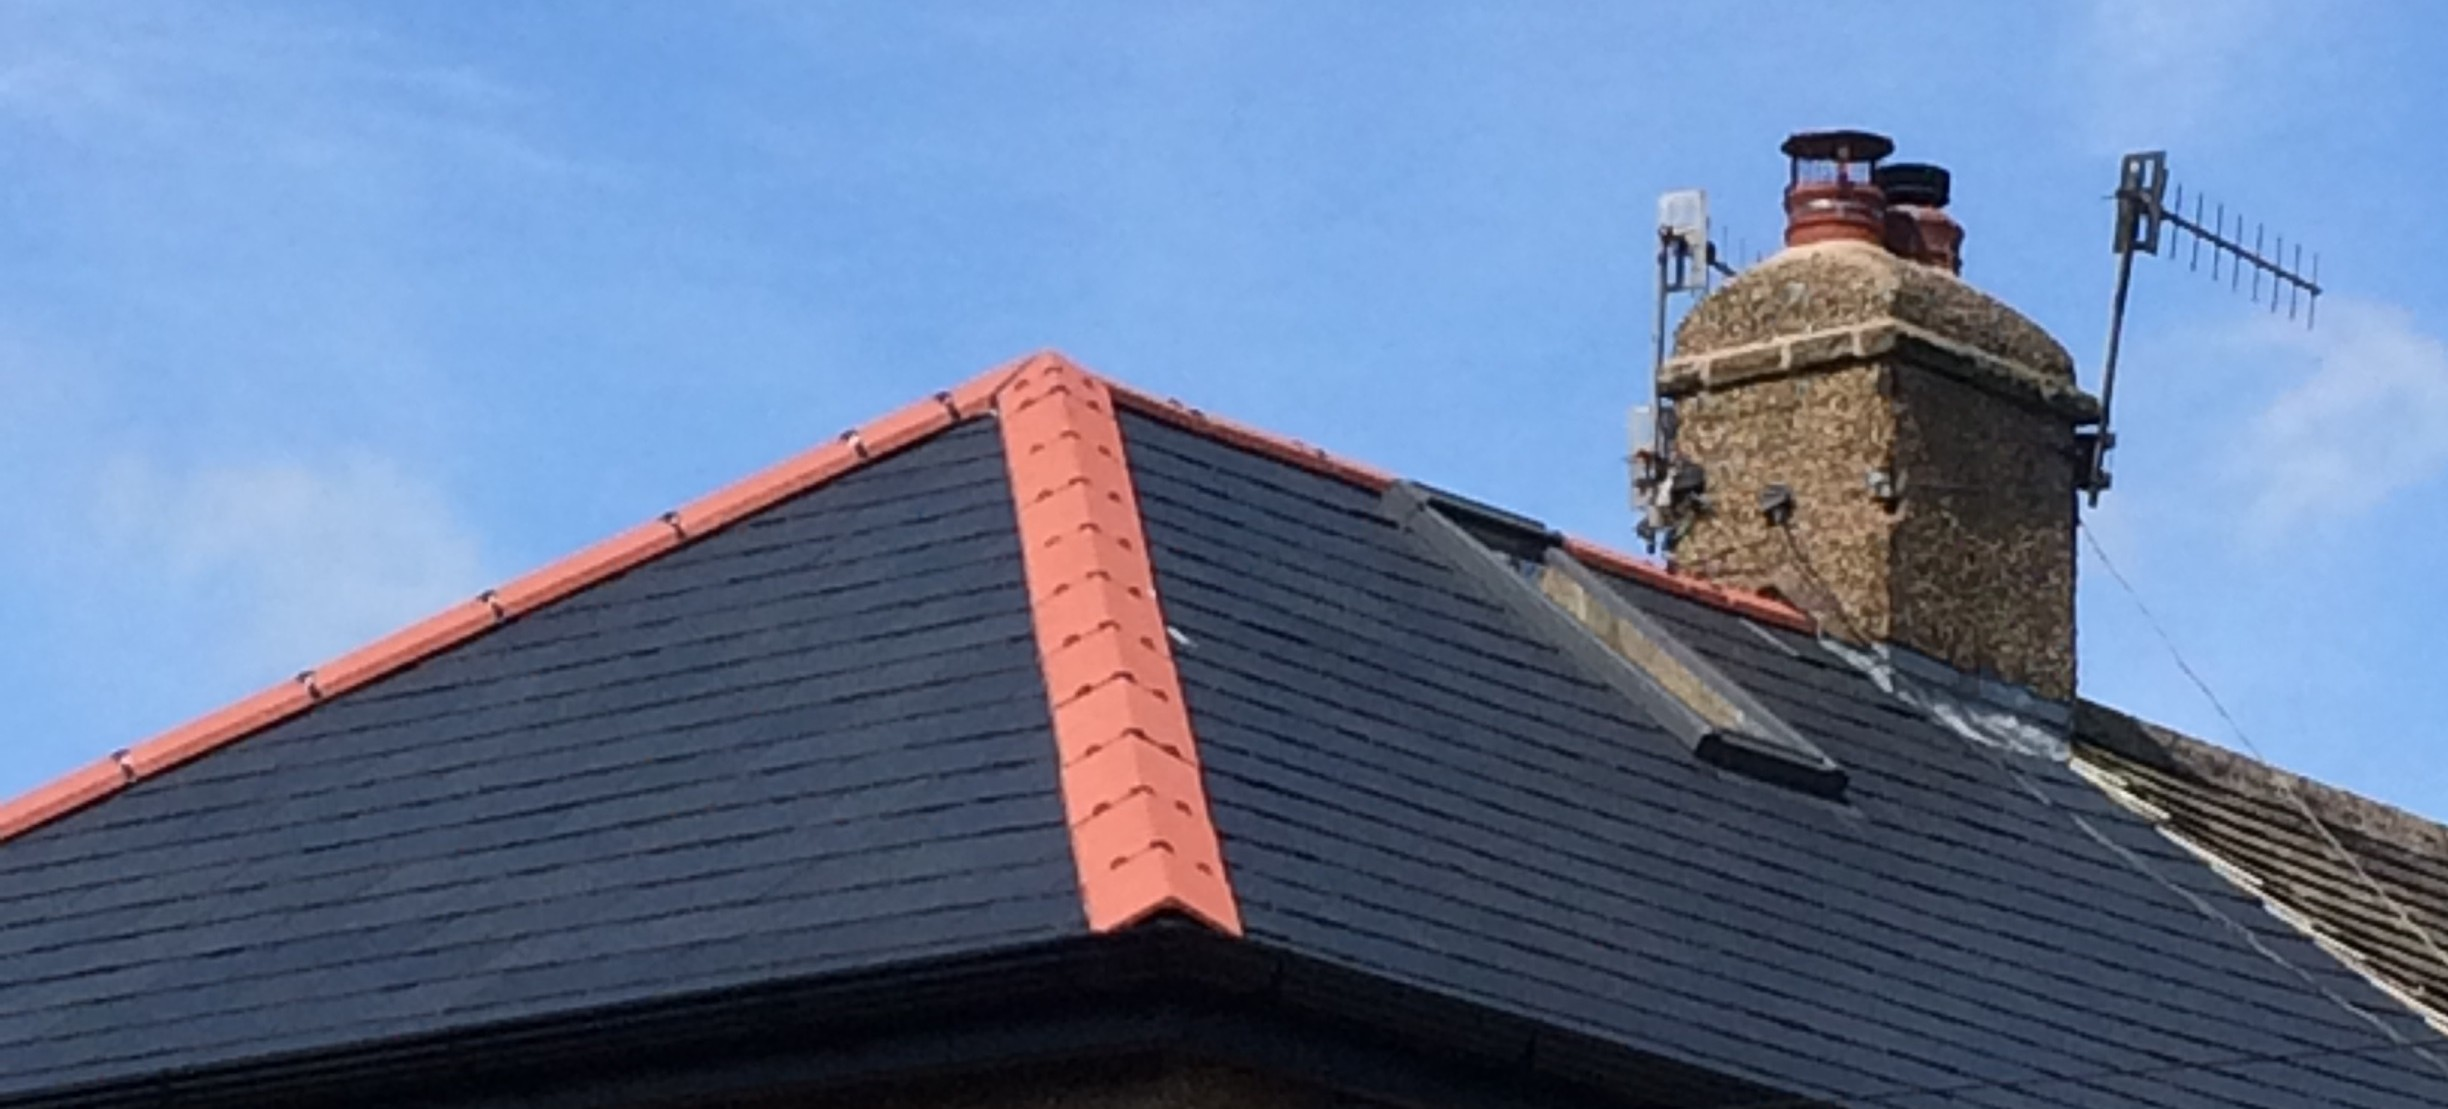 Calidad 10 slates in situ with contrasting red ridge tiles